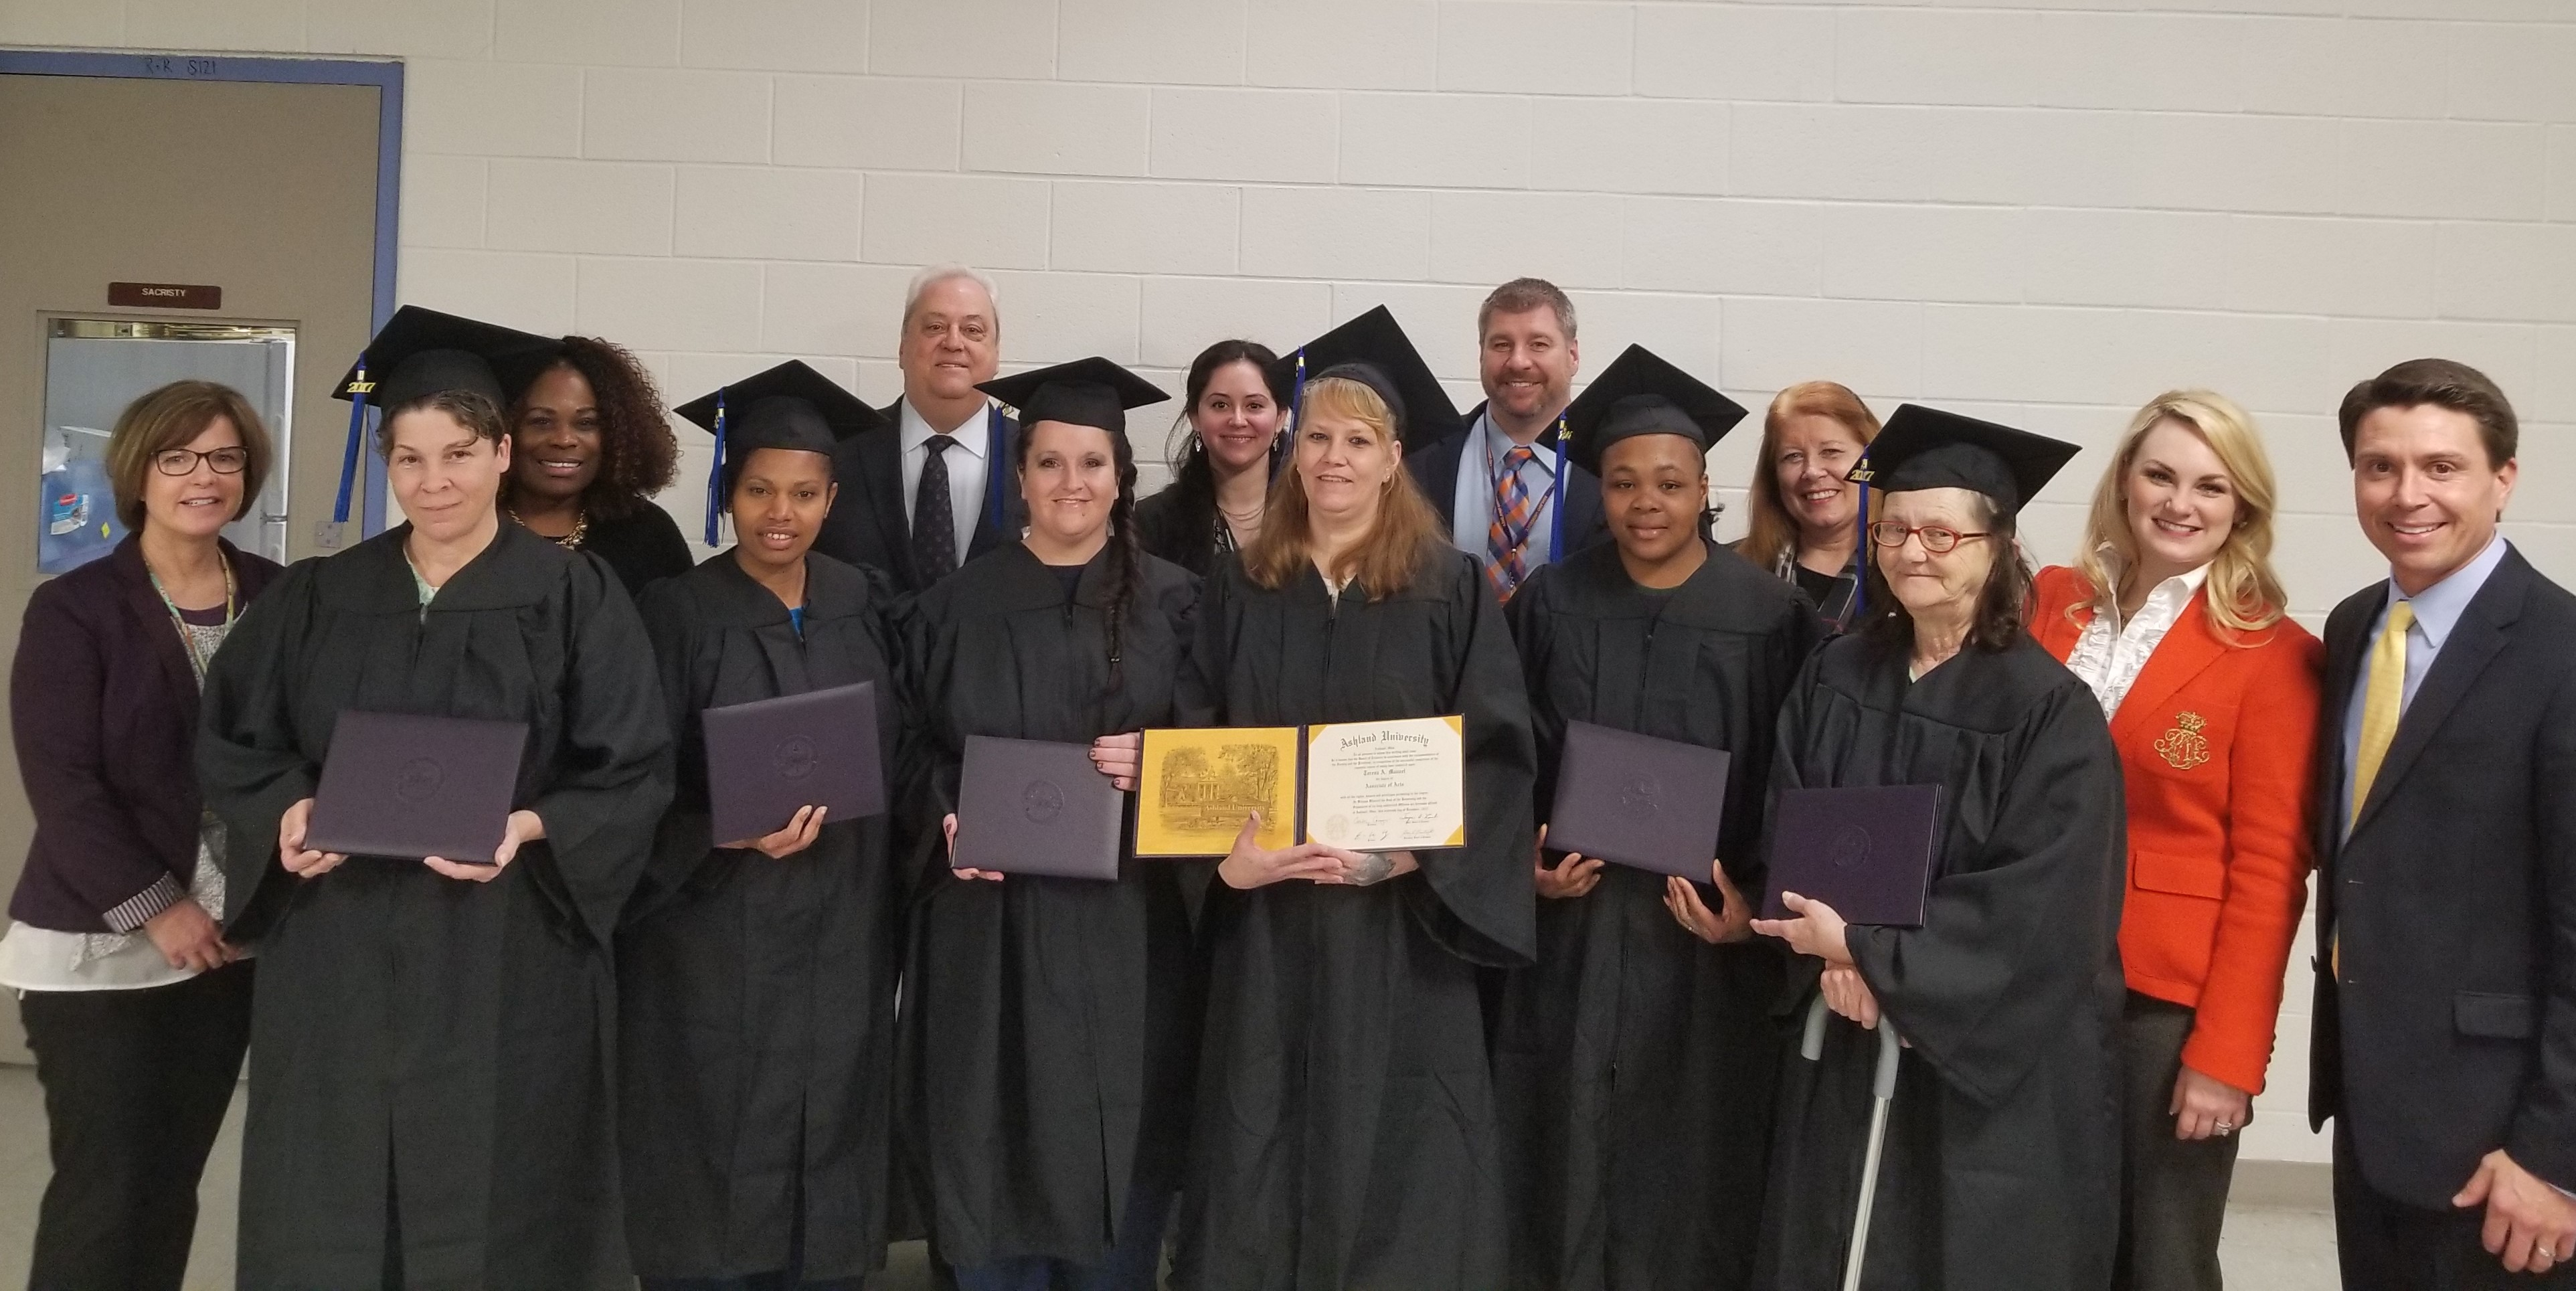 Spring Commencement at ORW